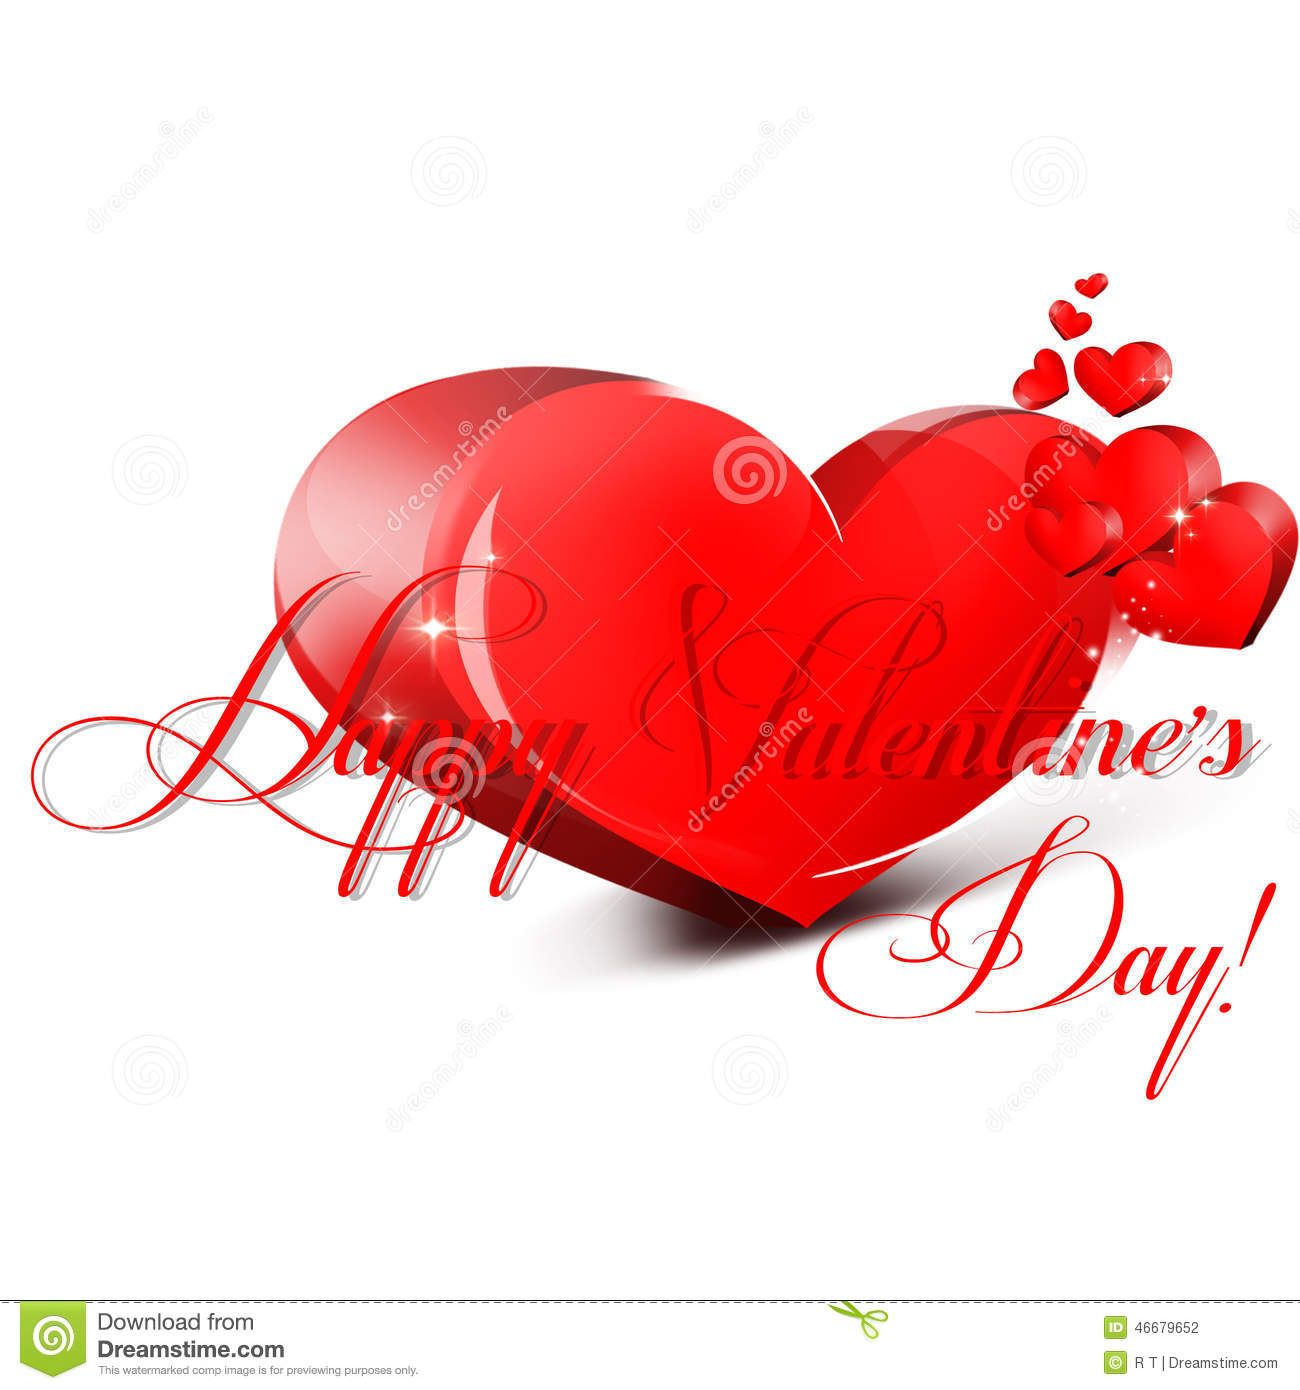 Valentines Day Stock Illustration - Image: 46679652